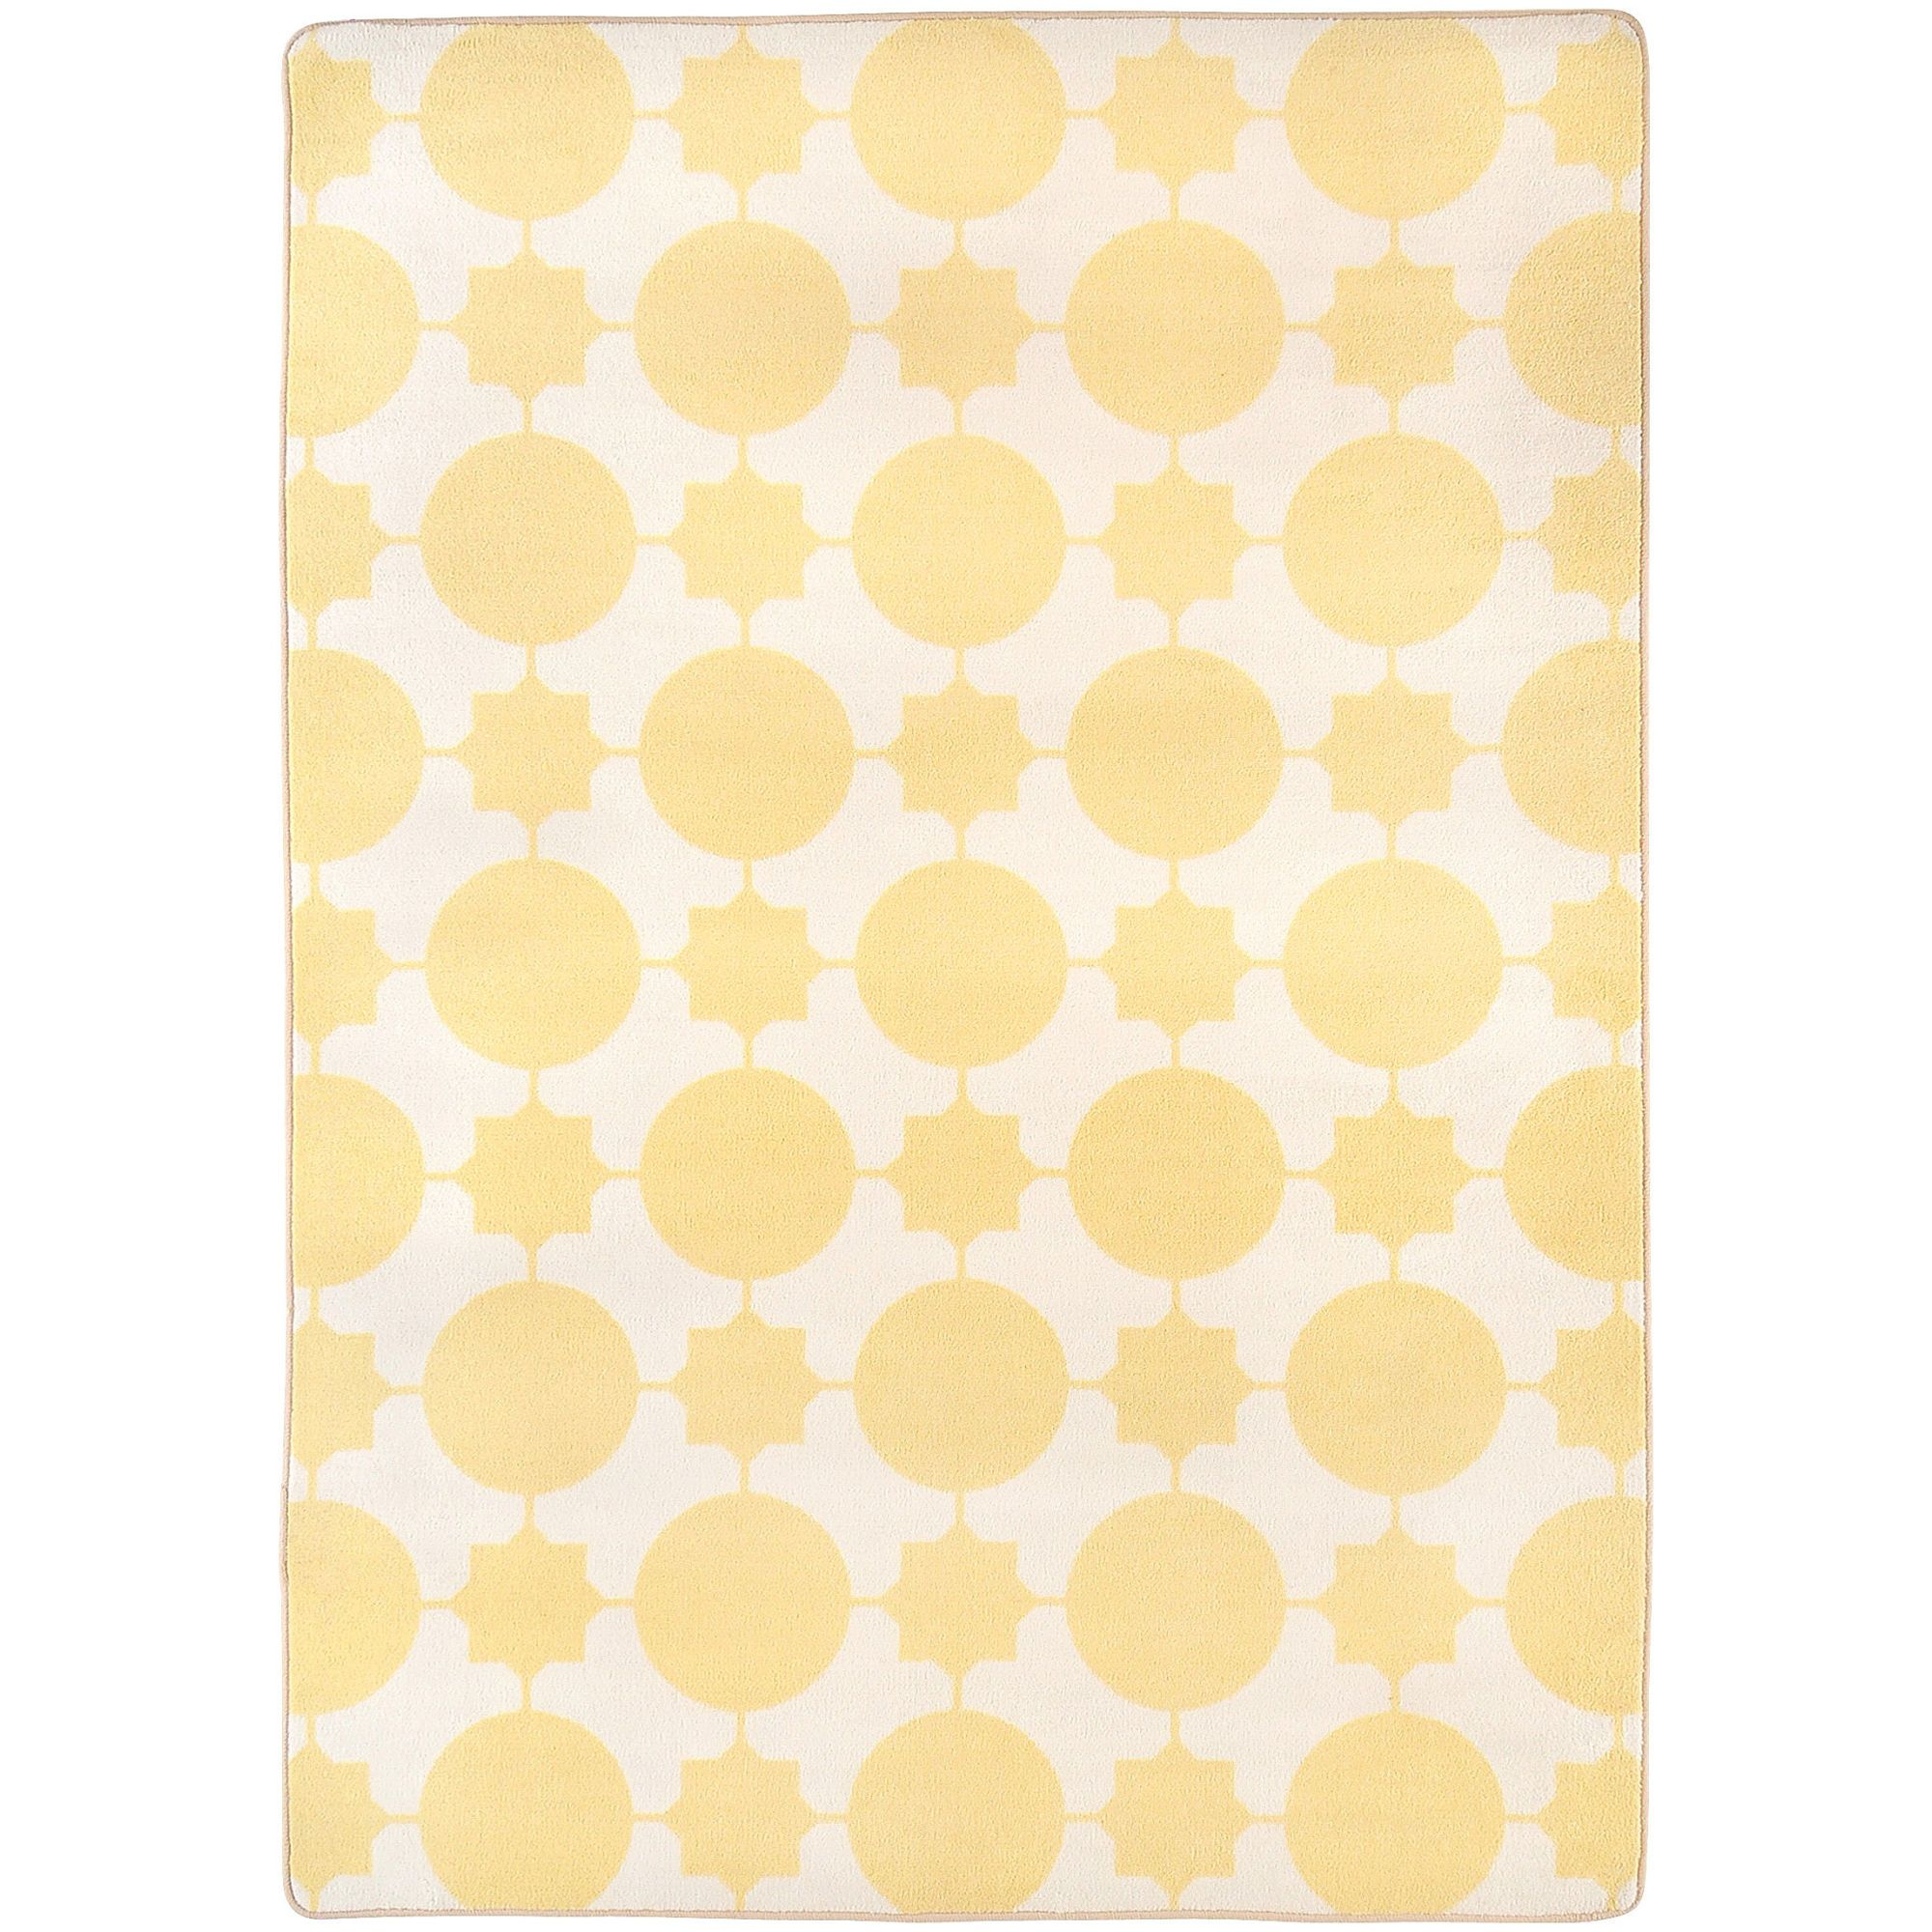 "flirty pale yellow kids rug 5'4"" x 7'8"" $200.00 